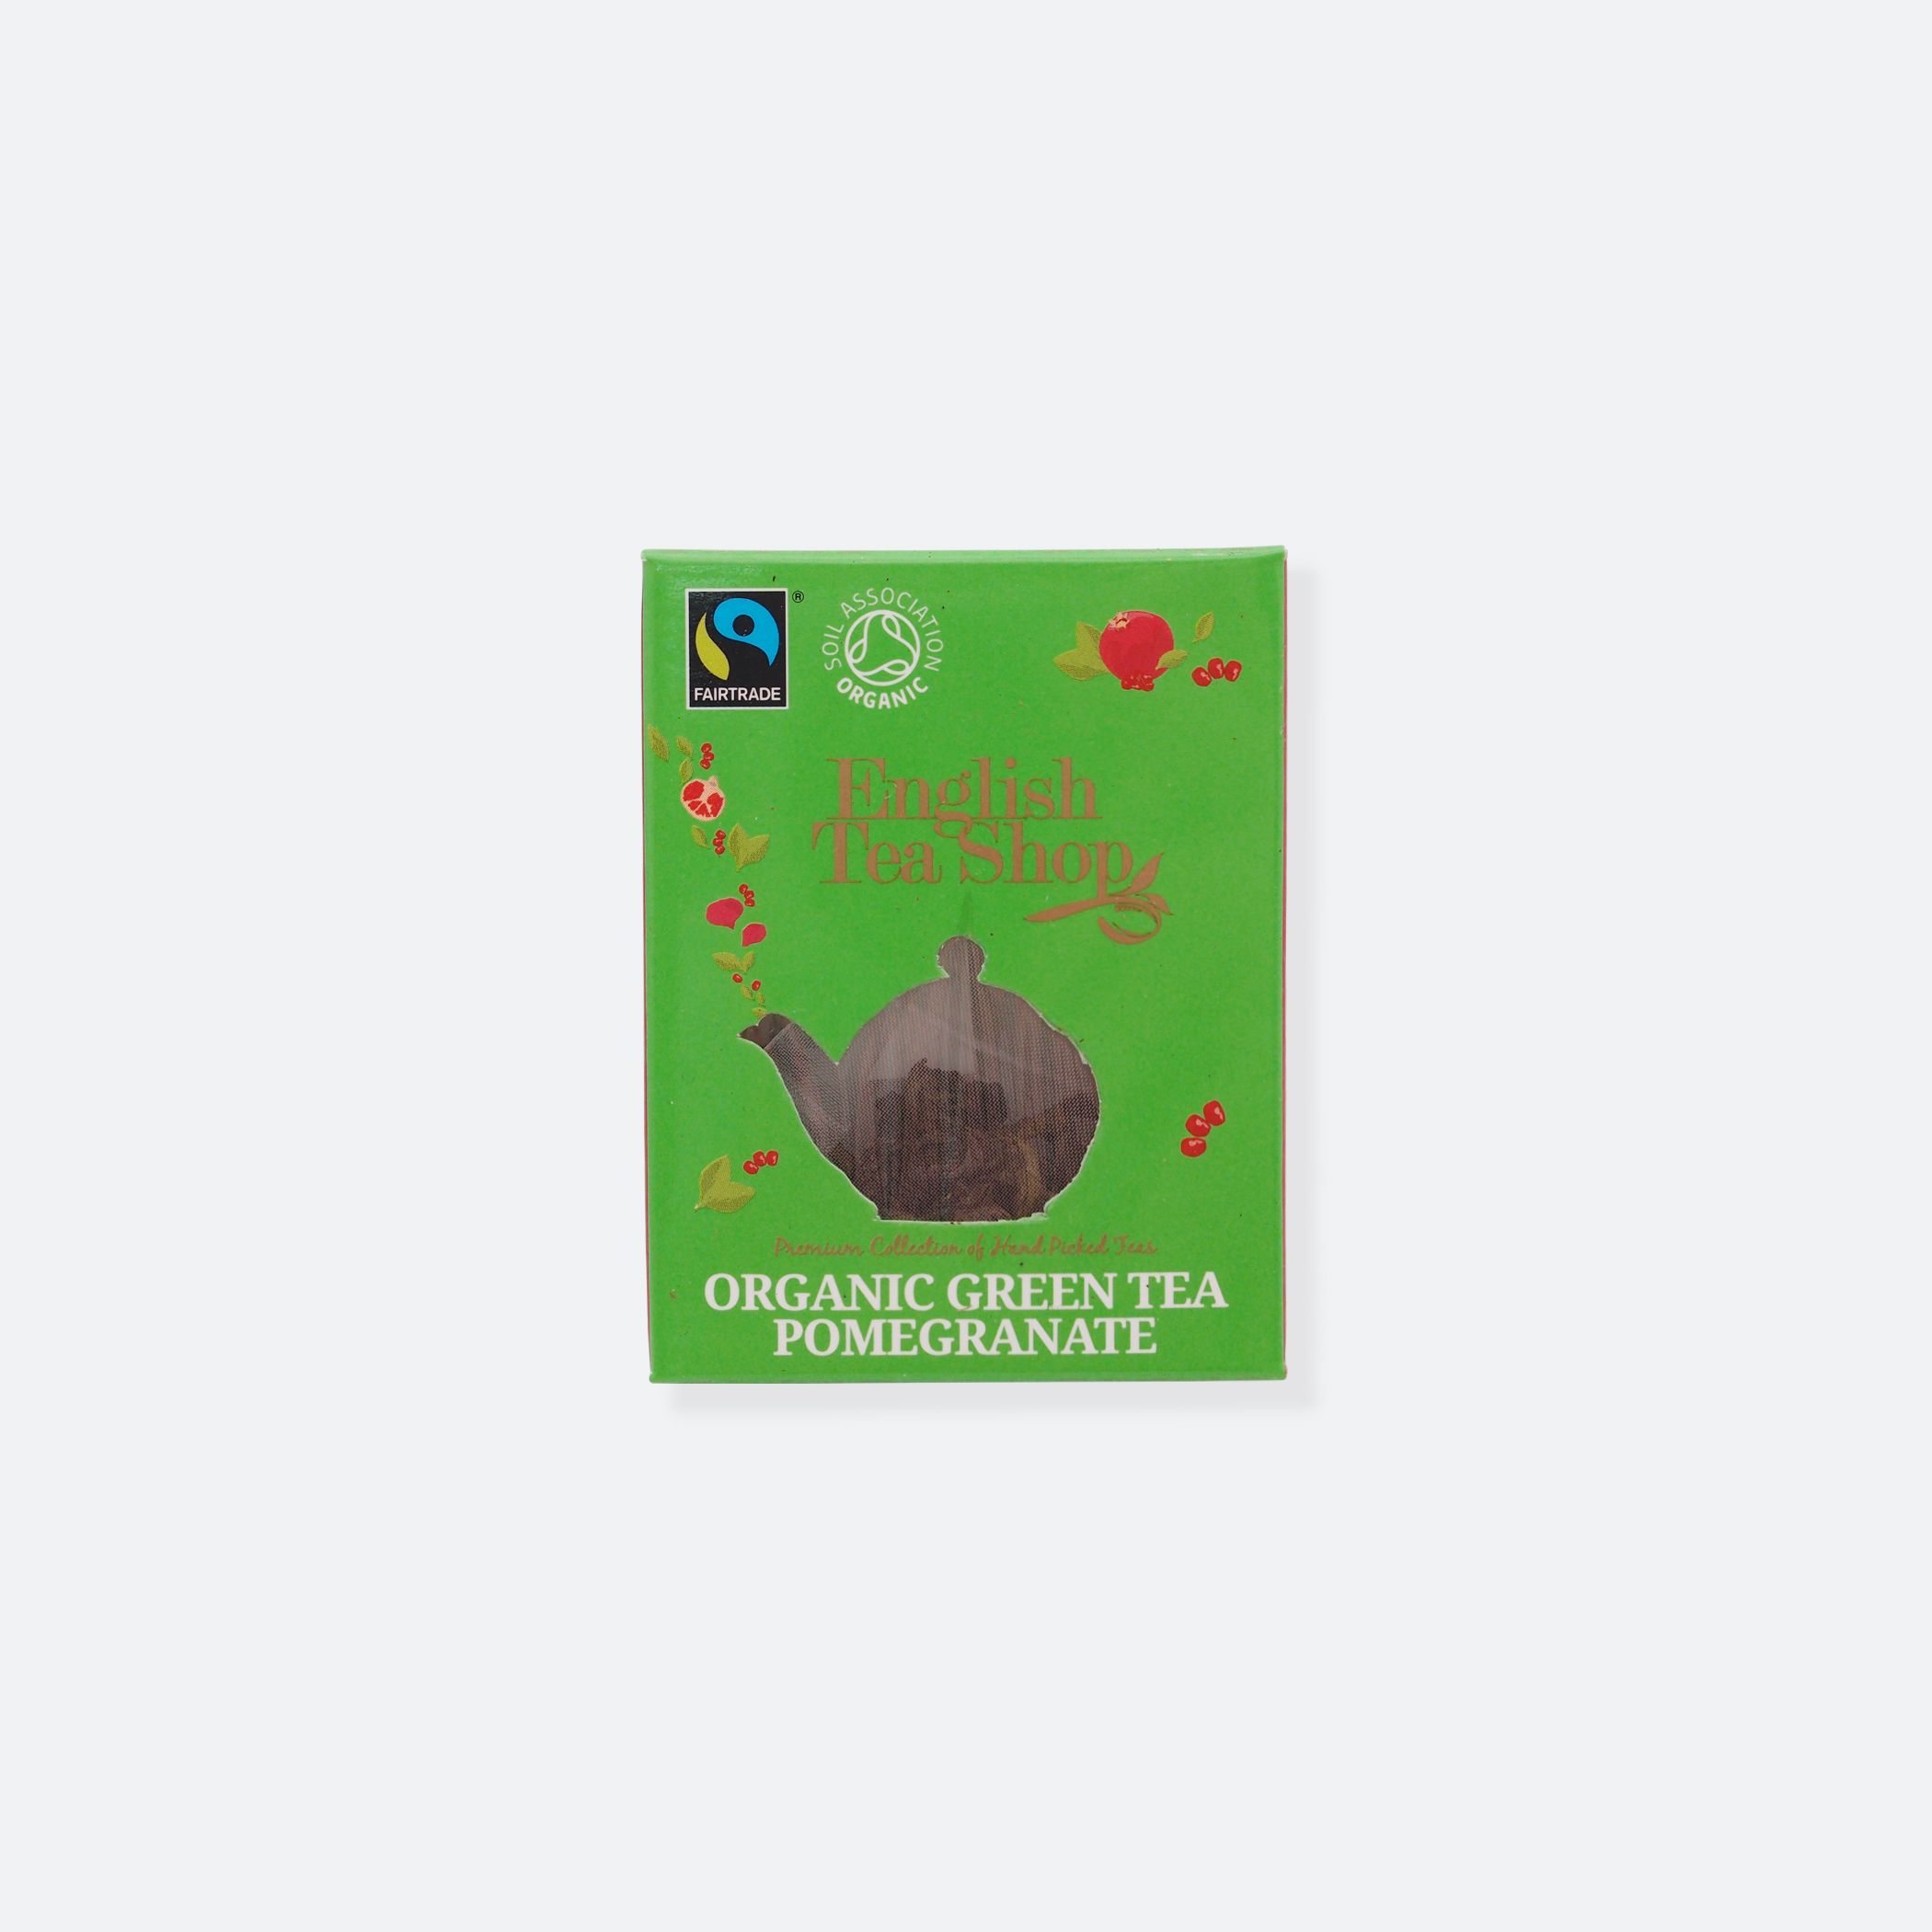 OhMart English Tea Shop - Organic Green Tea Pomegranate 1